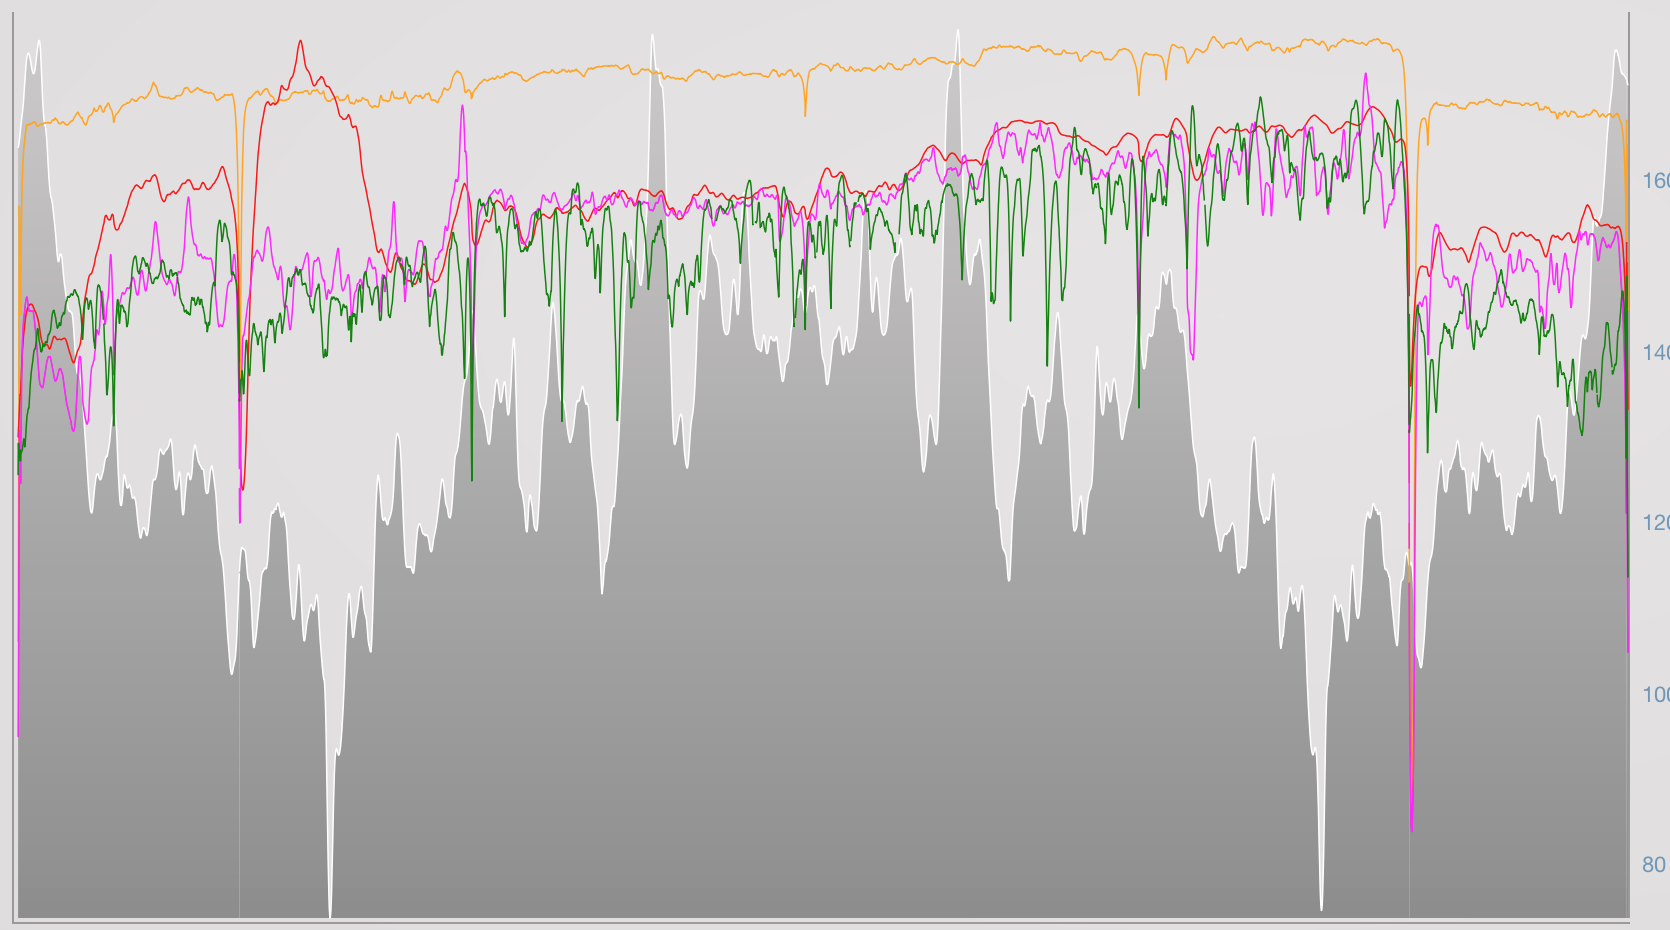 """Long run out. (Pink = Power, Green = Pace, Orange = Cadence, Red = Heart Rate)  We can see here that there is more variance with pace but also there is decoupling, so a lower pace at the end of the run. However, the power remains fairly consistent for that last block. This shows how on longer runs, as the body fatigues, traditional """"pace"""" orientated measures of training doses may be inaccurate. Also, we can an ensure a more steady effort without worrying about pace changes. For the final hill, we can see the effort was more or less constant, although the pace dropped off."""